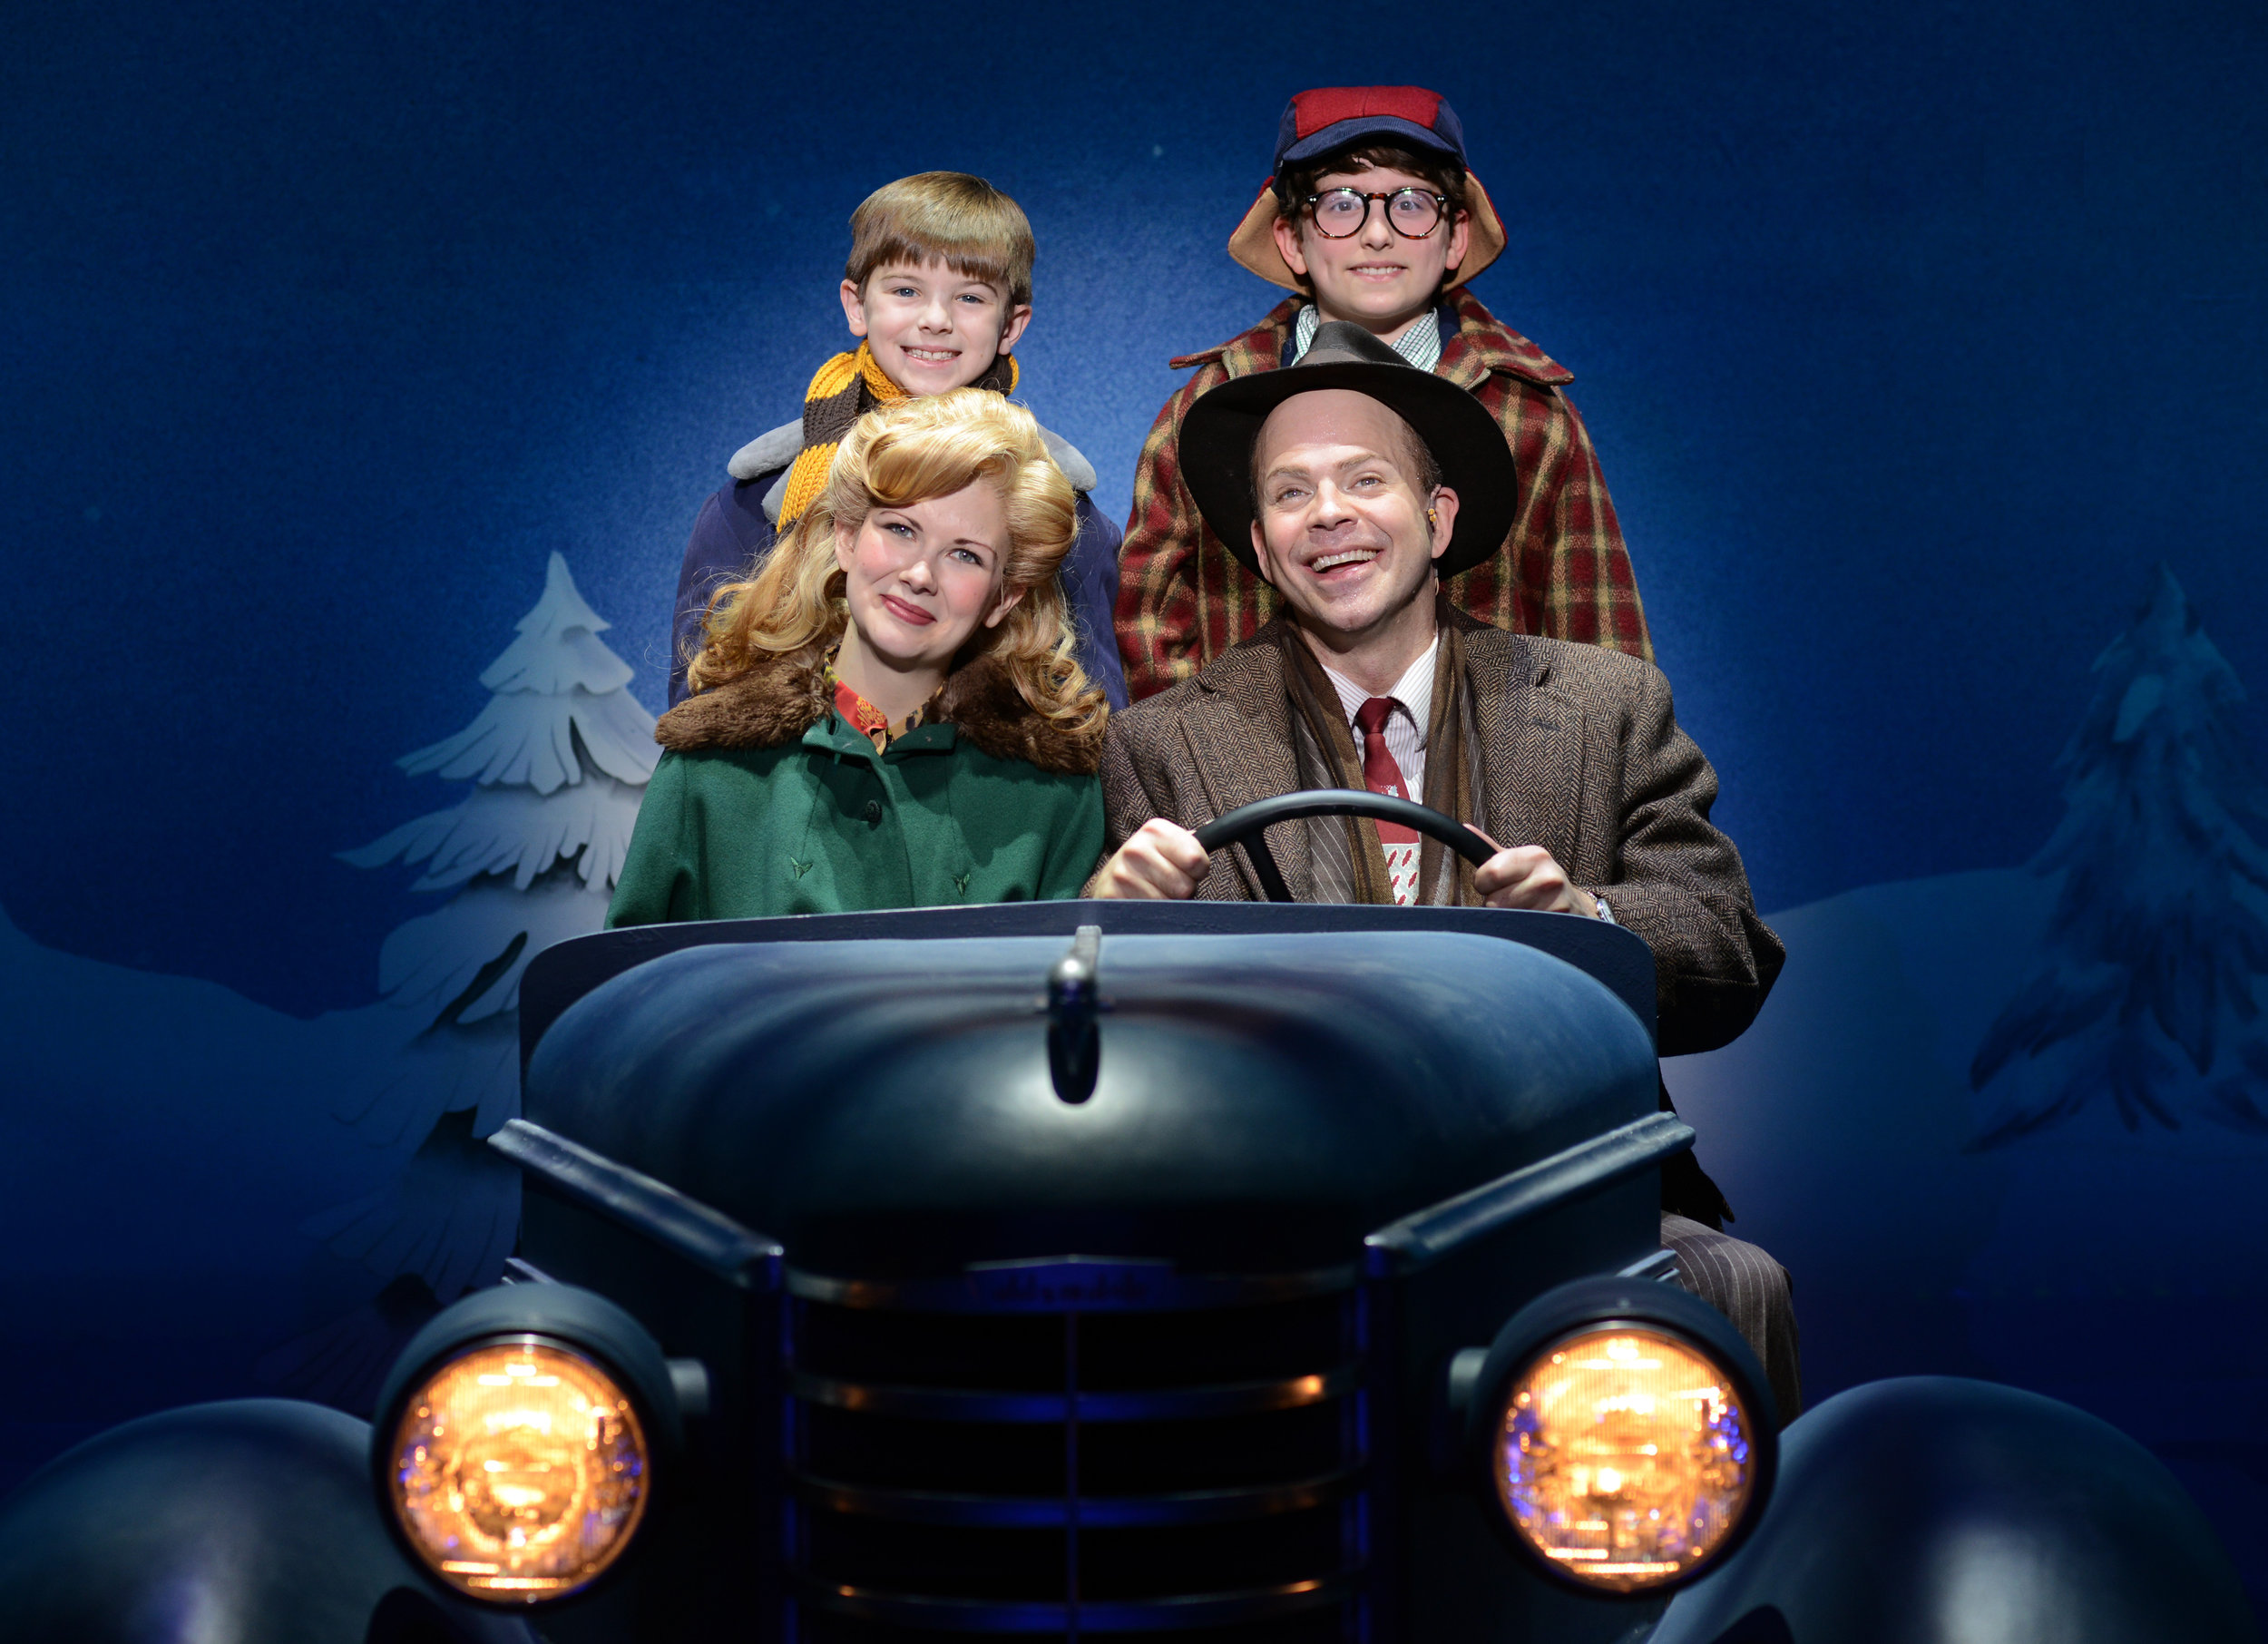 Photo 7 - Susannah_Jones_as_Mother_Christopher_Swan_as_The_Old_Man_Cal_Alexander_as_Randy_and_Colton_Maurer_as_Ralphie_In_A_CHRISTMAS_STORY.jpg